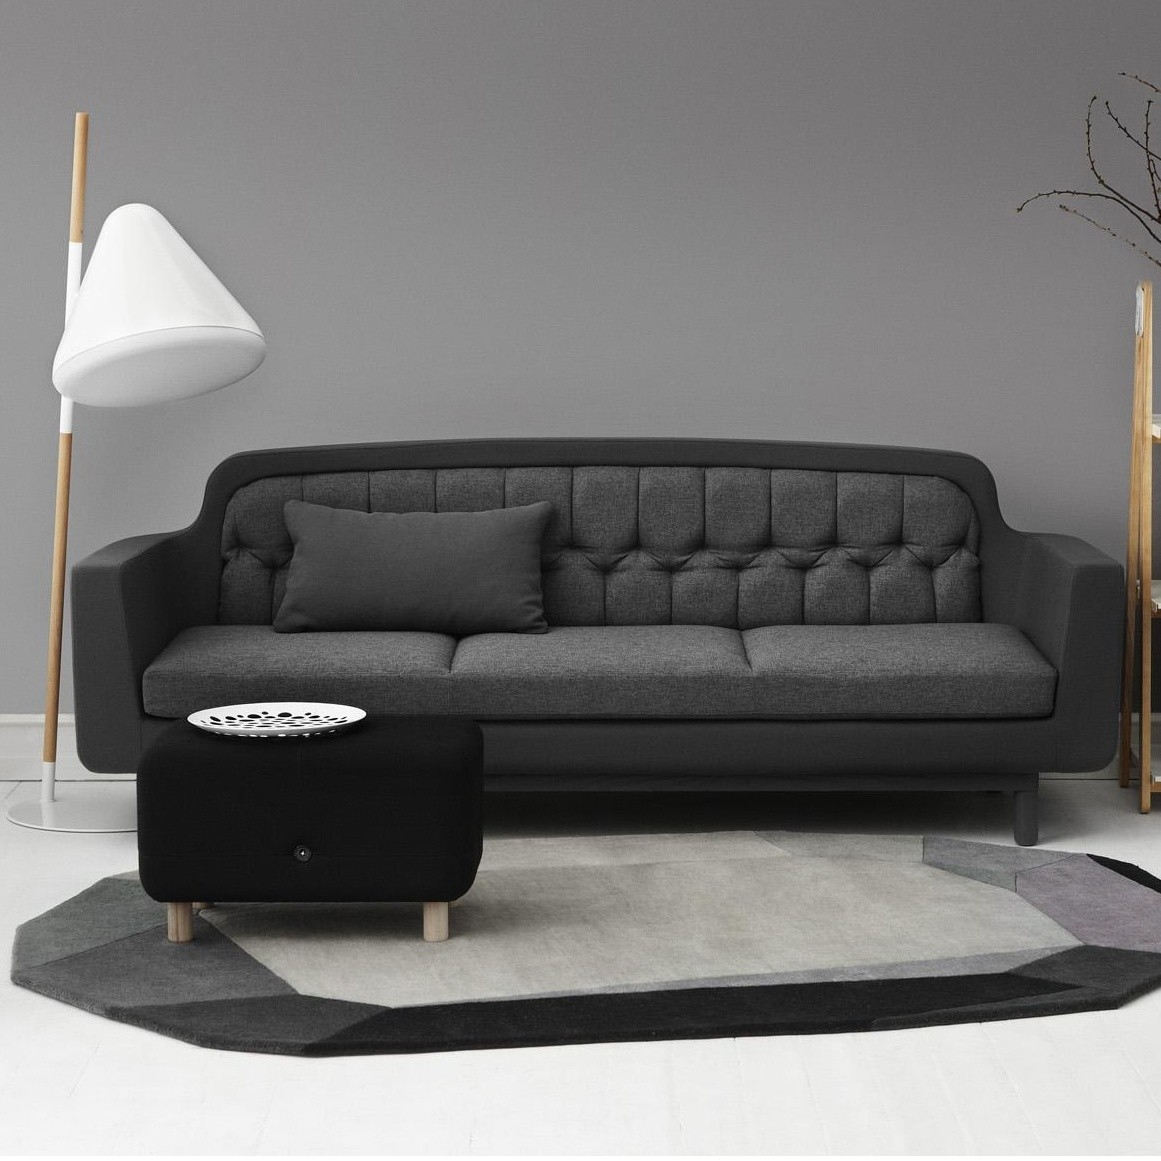 onkel sofa 3 seater normann copenhagen. Black Bedroom Furniture Sets. Home Design Ideas